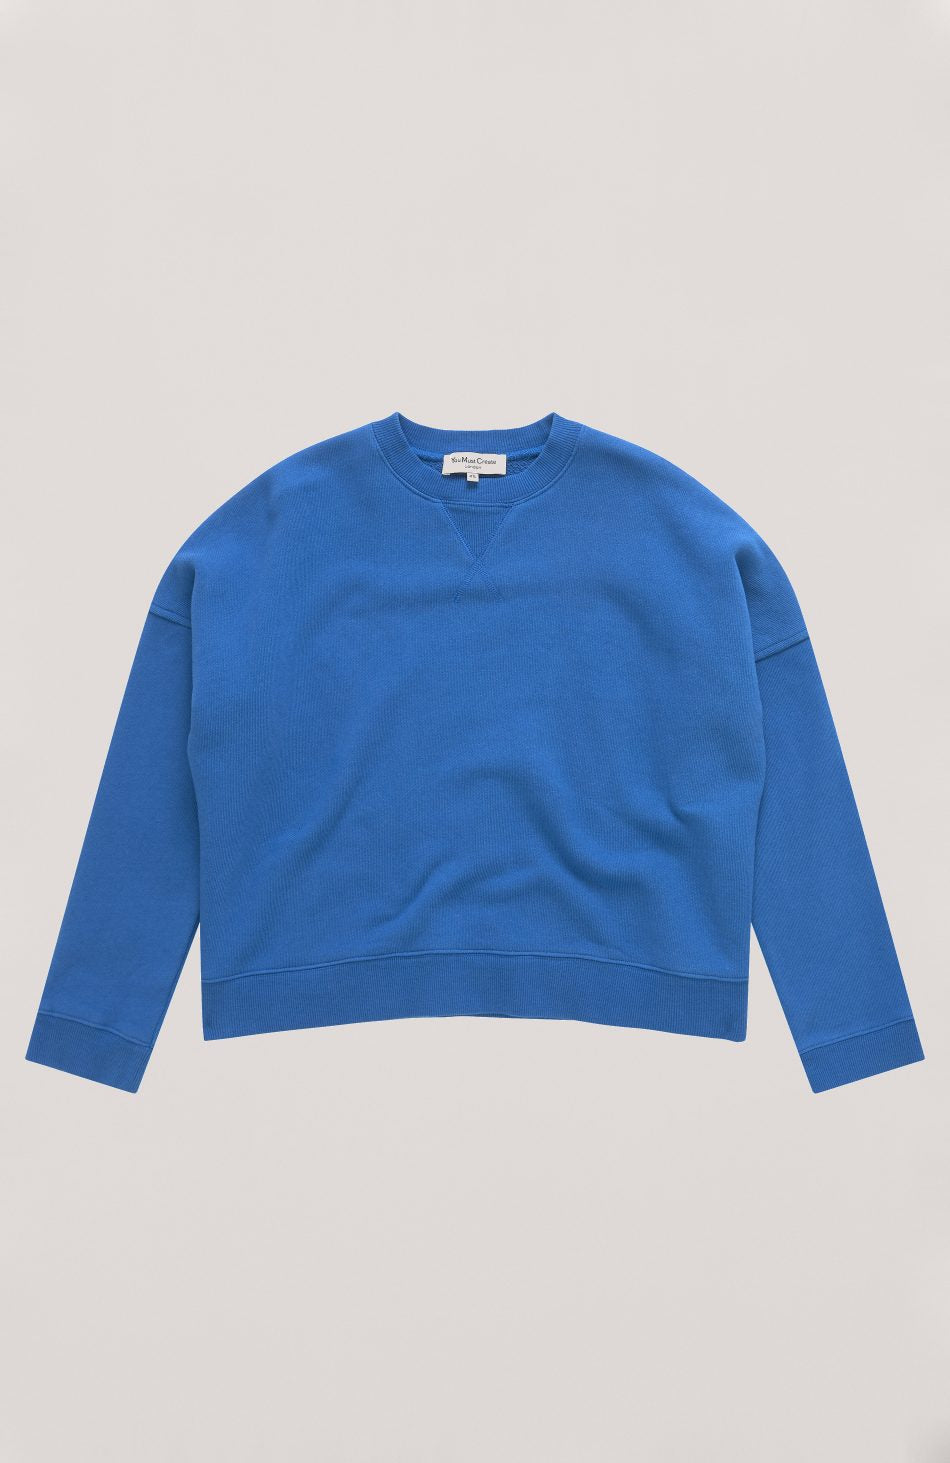 Almost Grown Sweatshirt in Blue